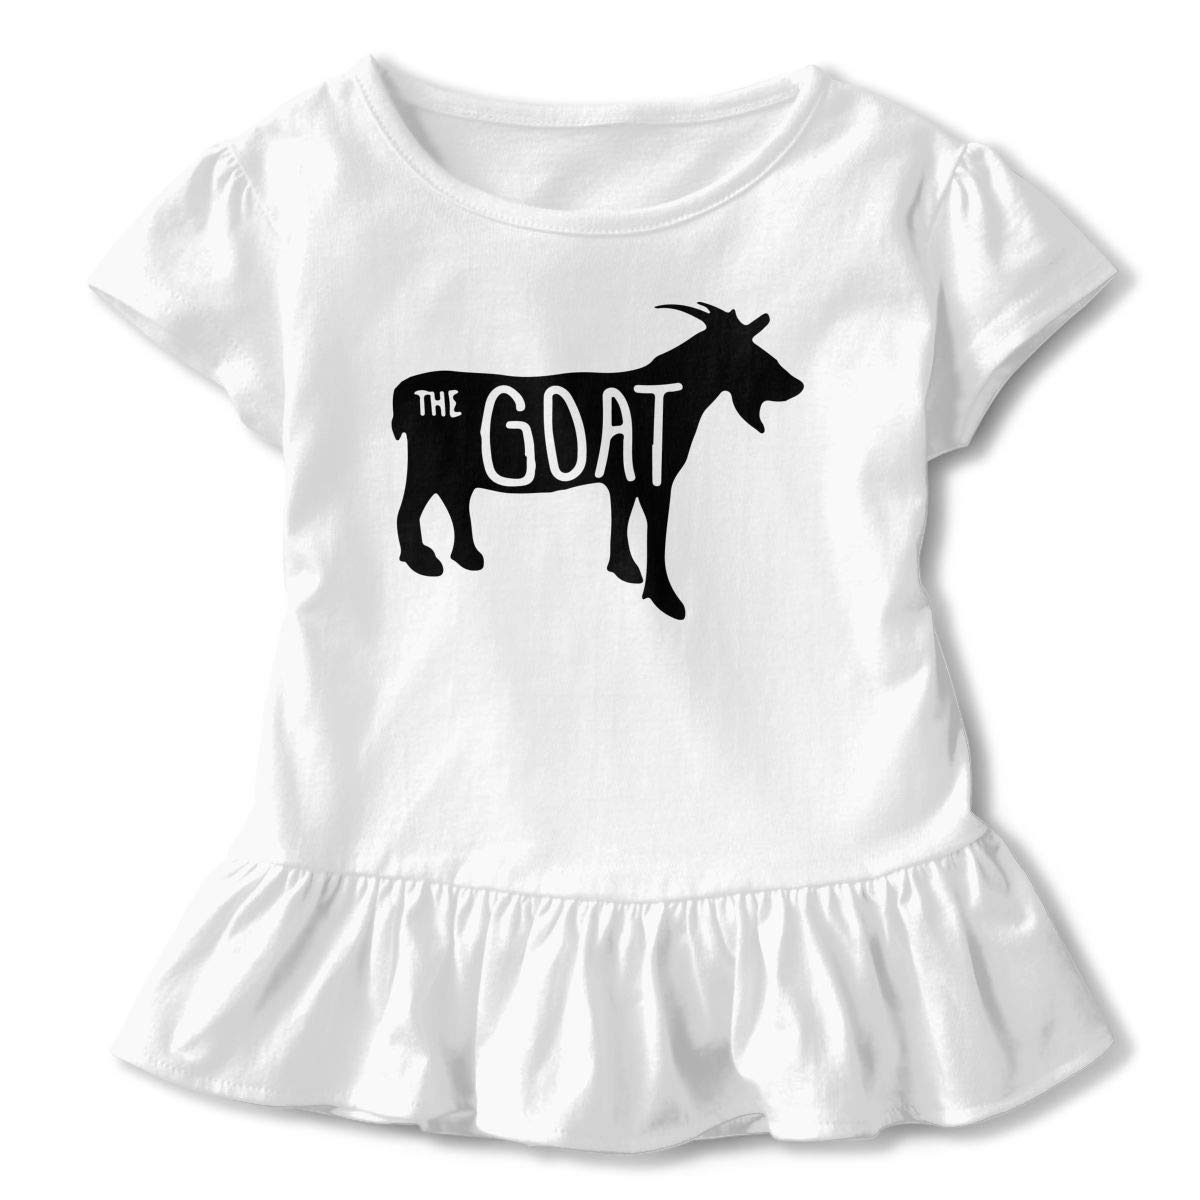 SHIRT1-KIDS The Goats Shadow Childrens Girls Short Sleeve Ruffles Shirt T-Shirt for 2-6 Toddlers